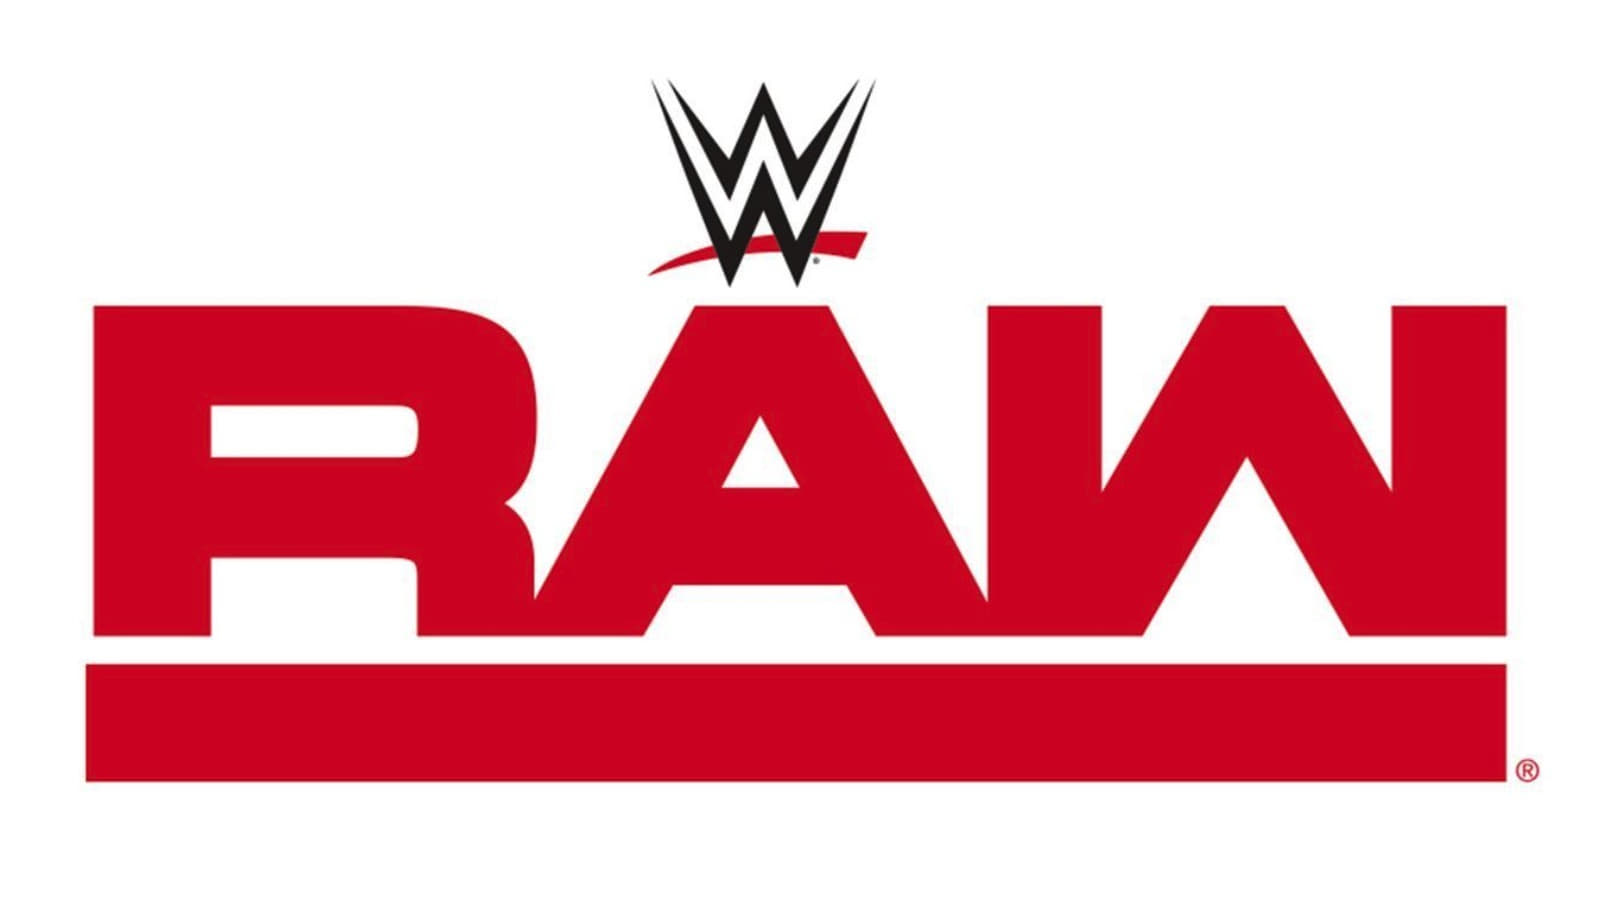 WWE Raw - Season 23 Episode 47 : November 23, 2015 (Nashville, TN)